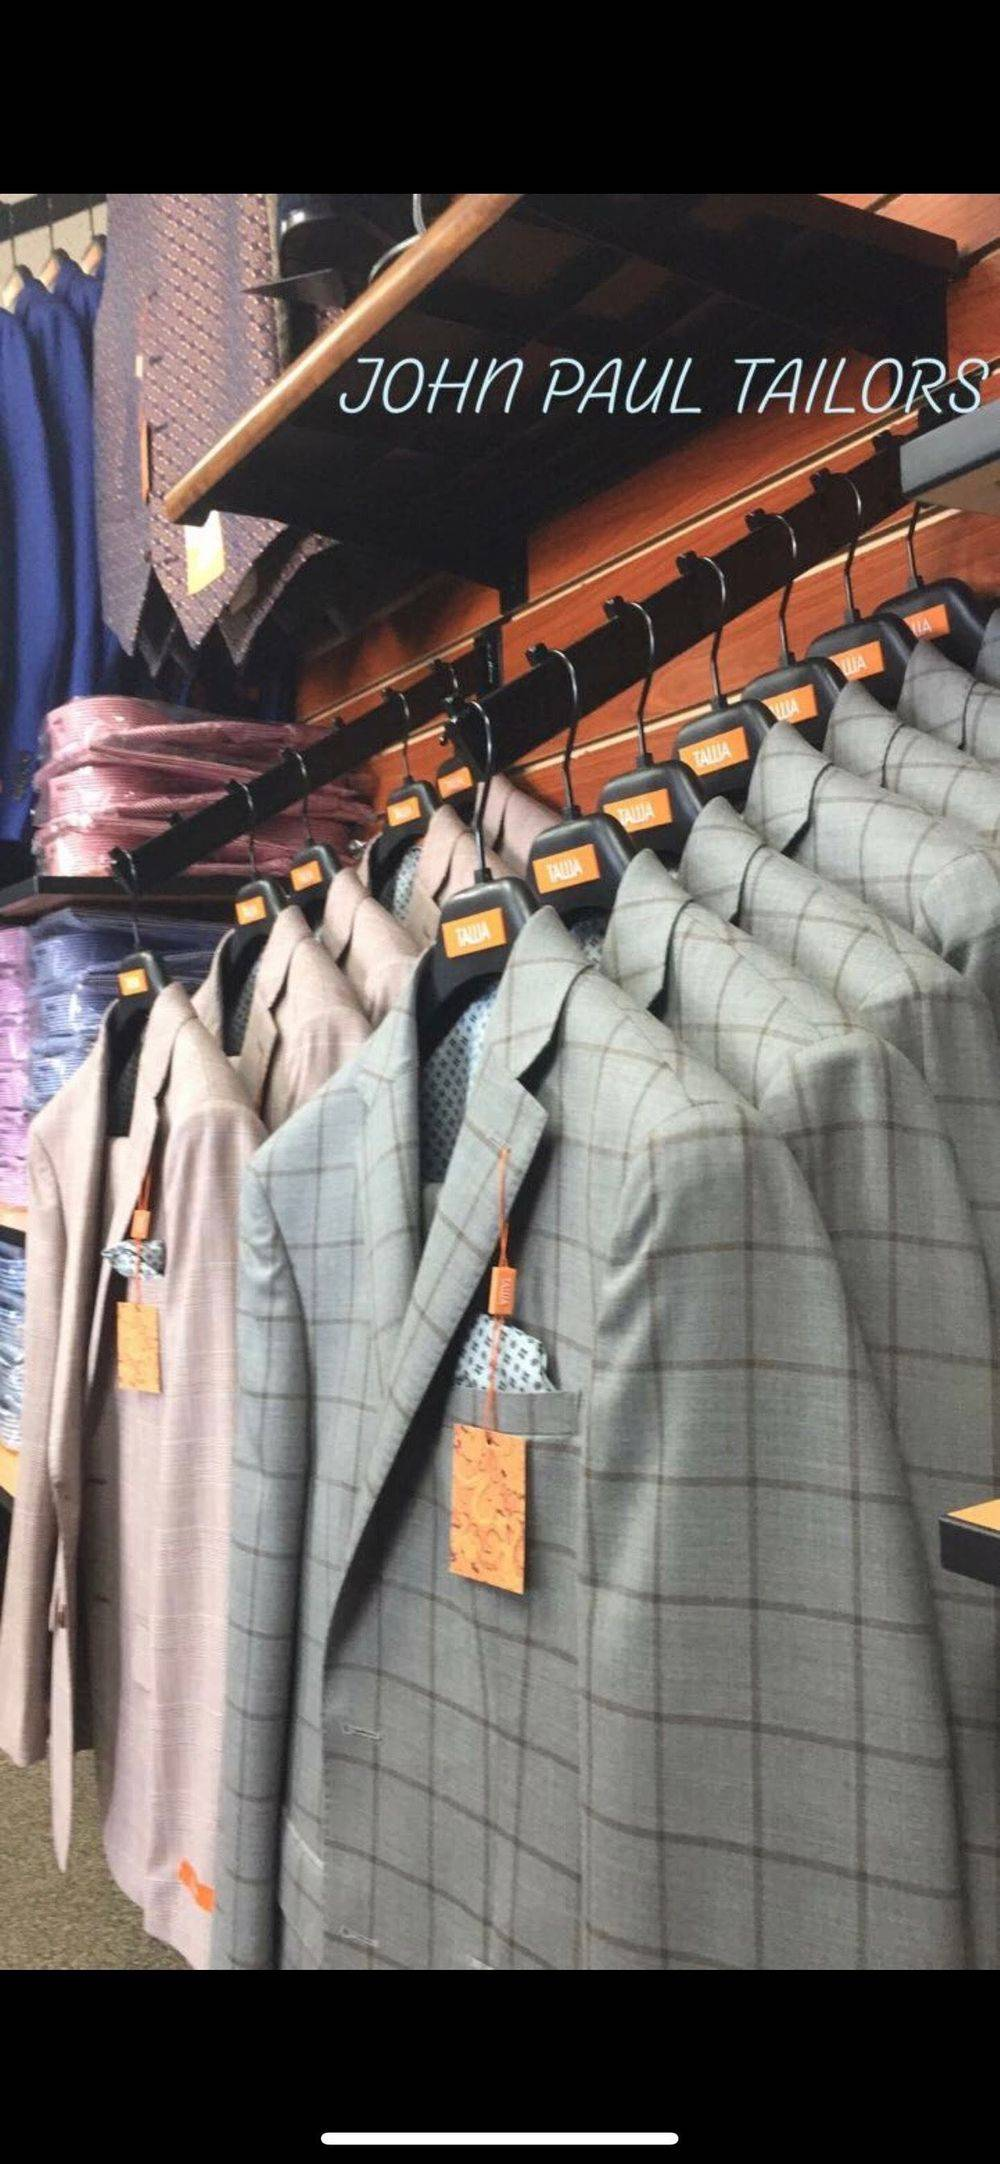 tailoring for men and women JP tailors ia at 3806 union rd cheektowaga 14225 two minutes from walden galleria mall and a few minutes from depew lancaster and Williamsville tailor always on duty we are number one in the formal wear tuxedo rental we are expert tailors on ladies evening dresses